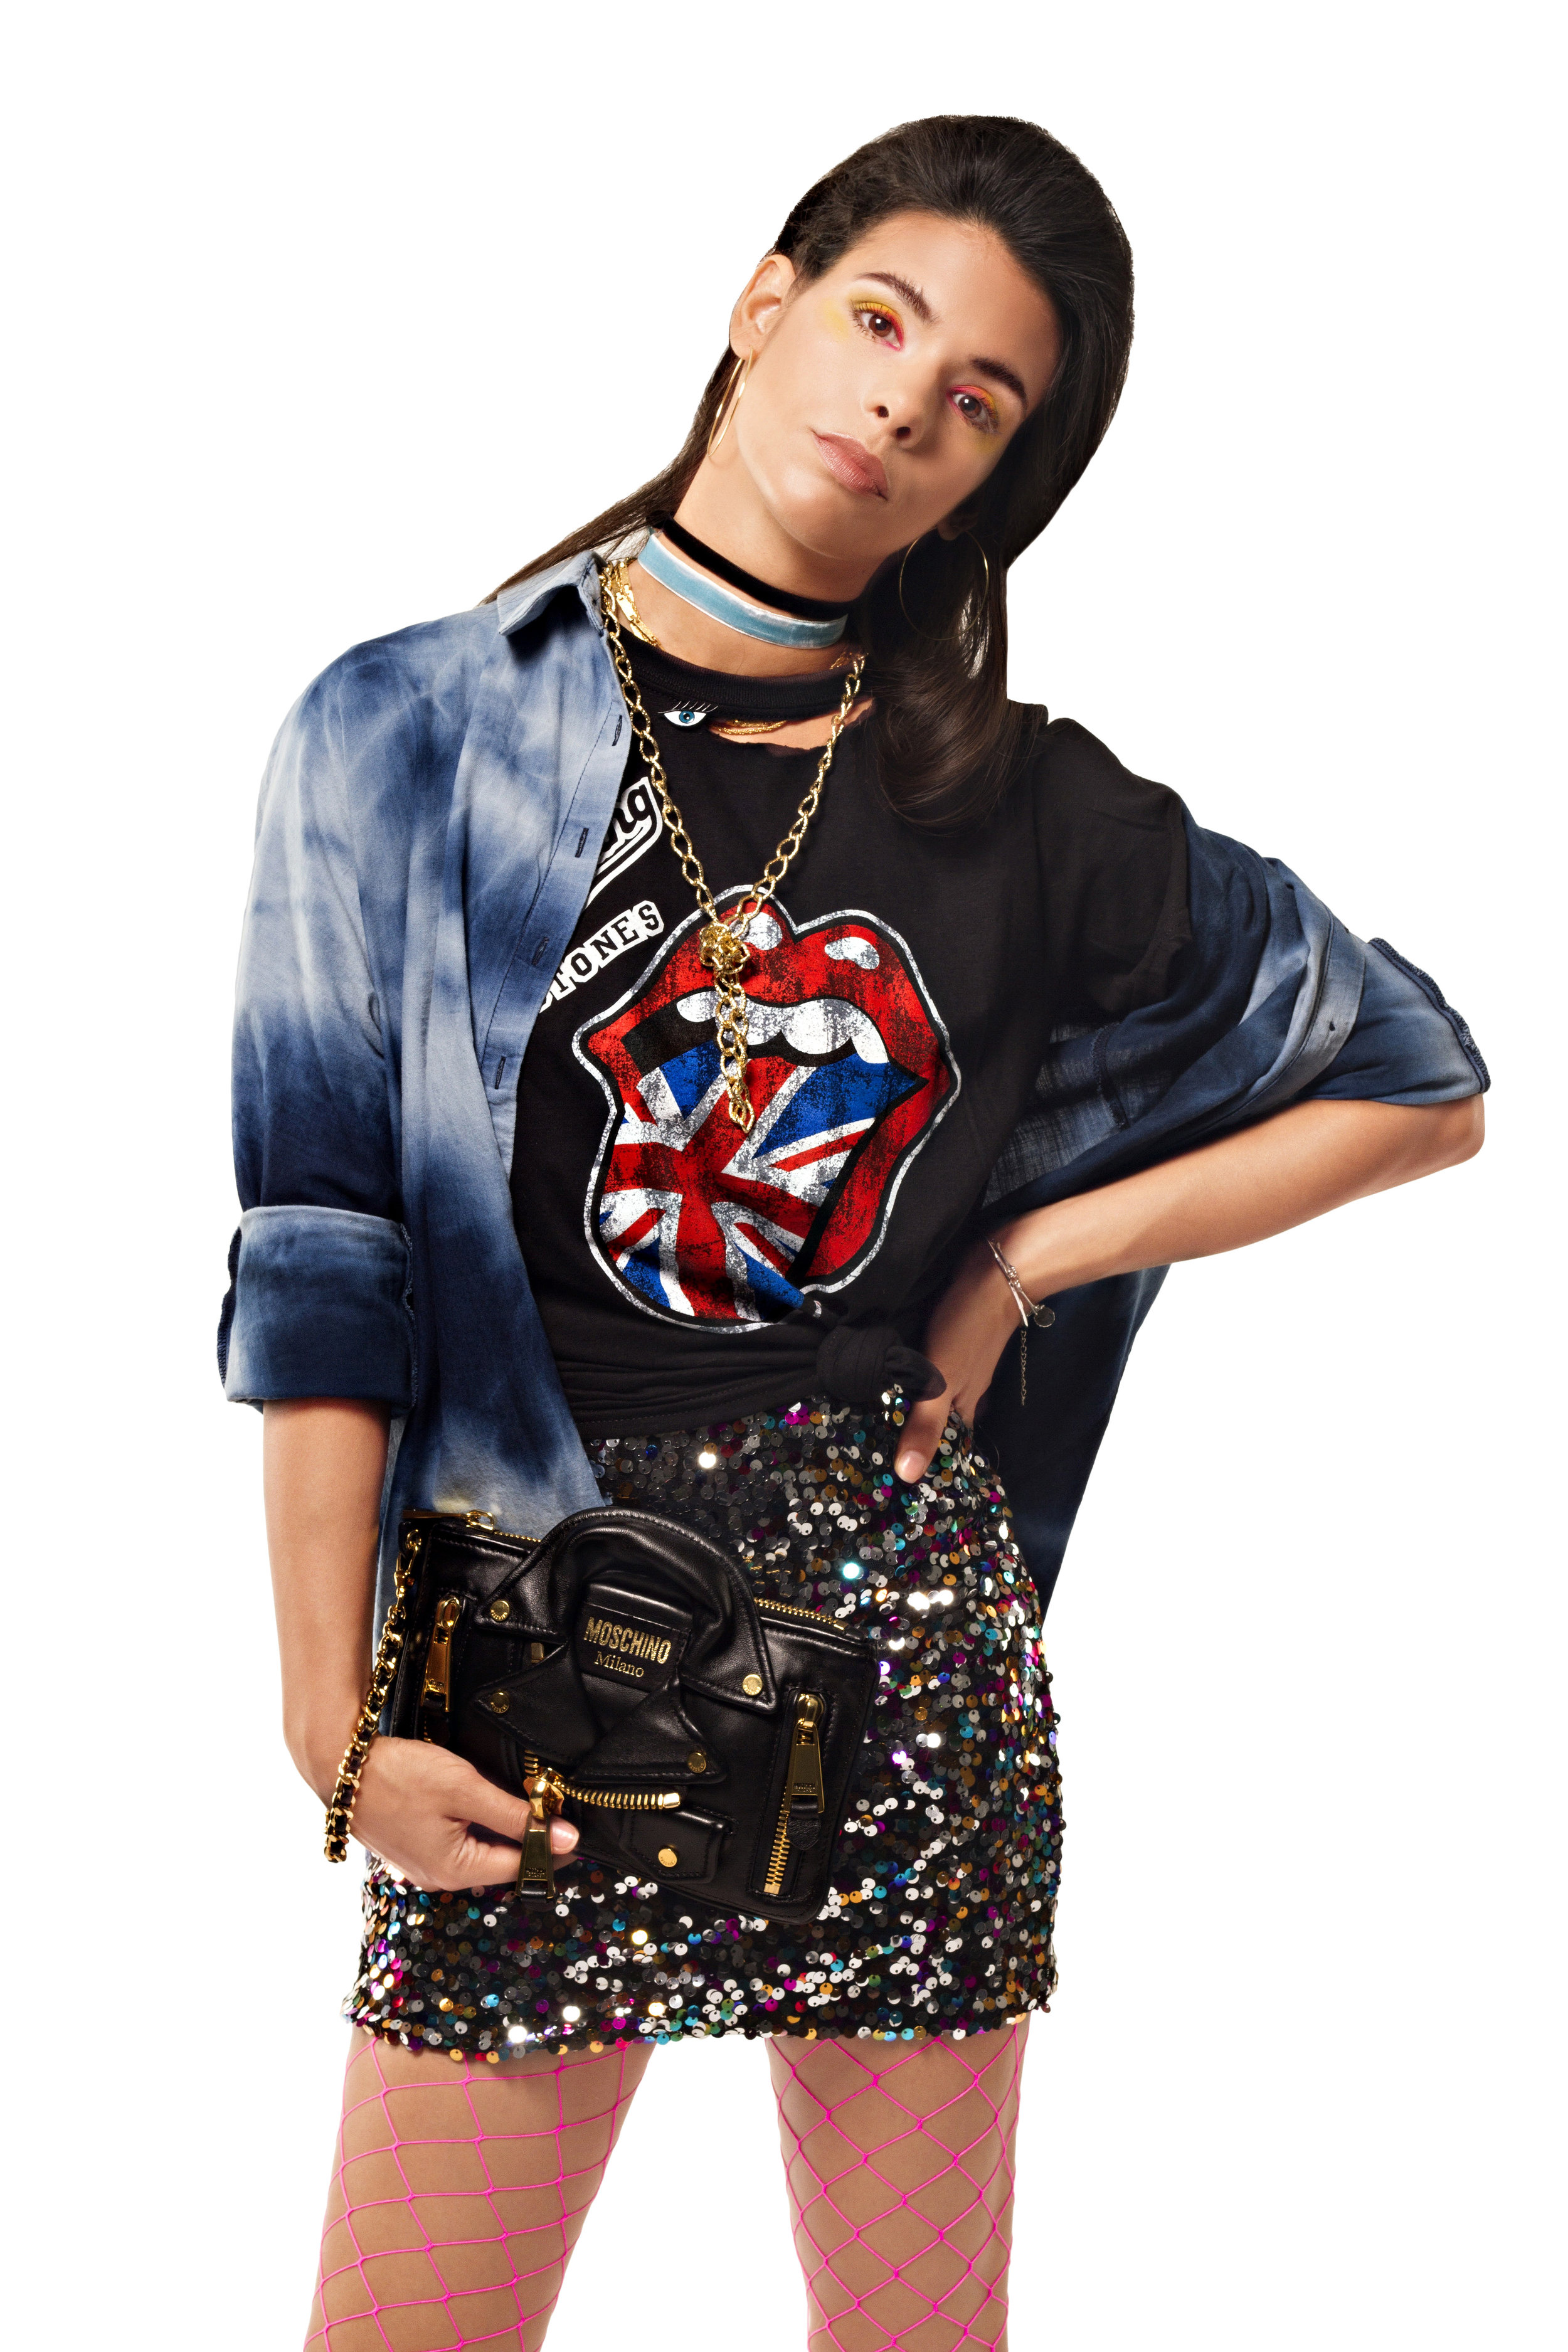 T-shirt  Rolling Stones Official ,Eye Pin  Stradivarius ,Denim Shirt  Zara ,Skirt  H&M ,Clutch  Moschino  at D'Adélia Store,Earrings  Claire's , Tights  Production's own